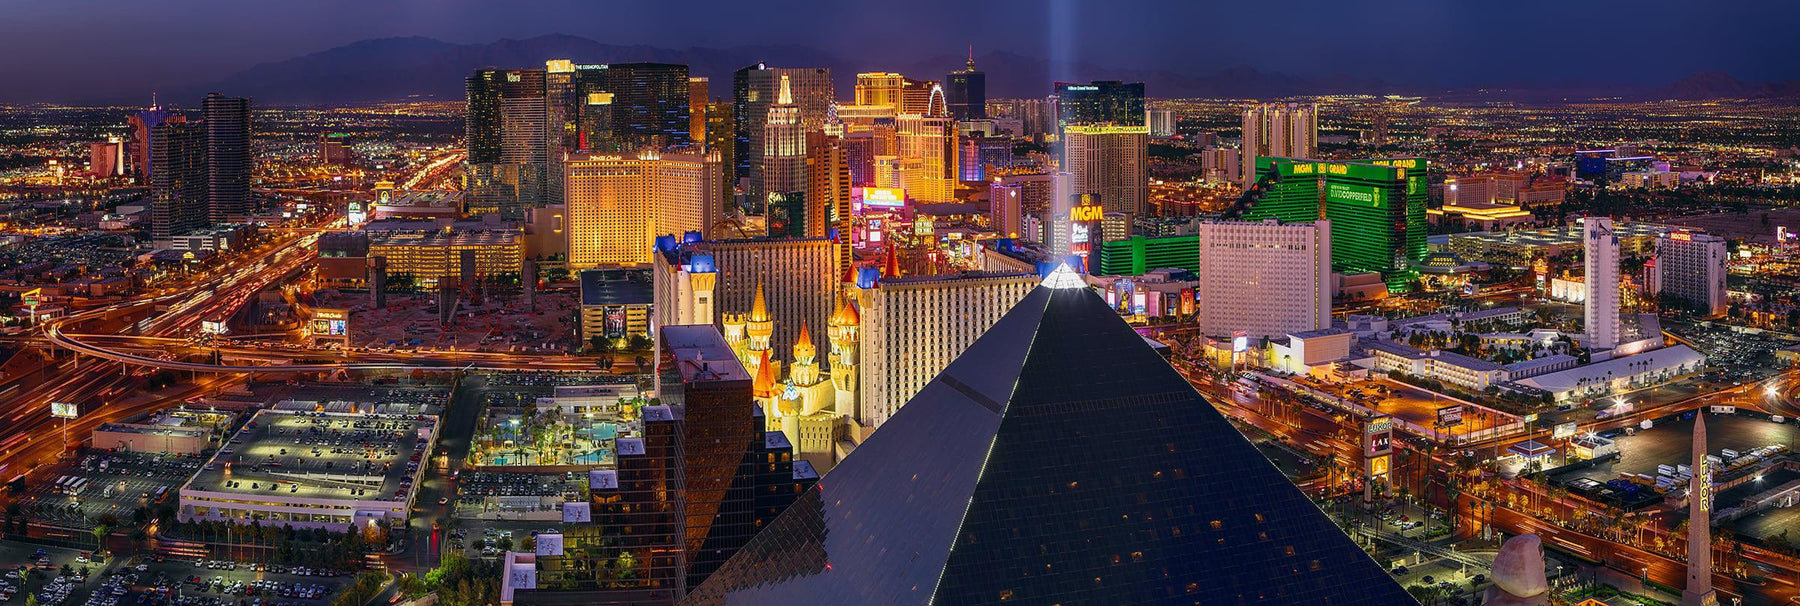 Rooftop view of the Las Vegas strip with the light of the Luxor hotel shining into the sky